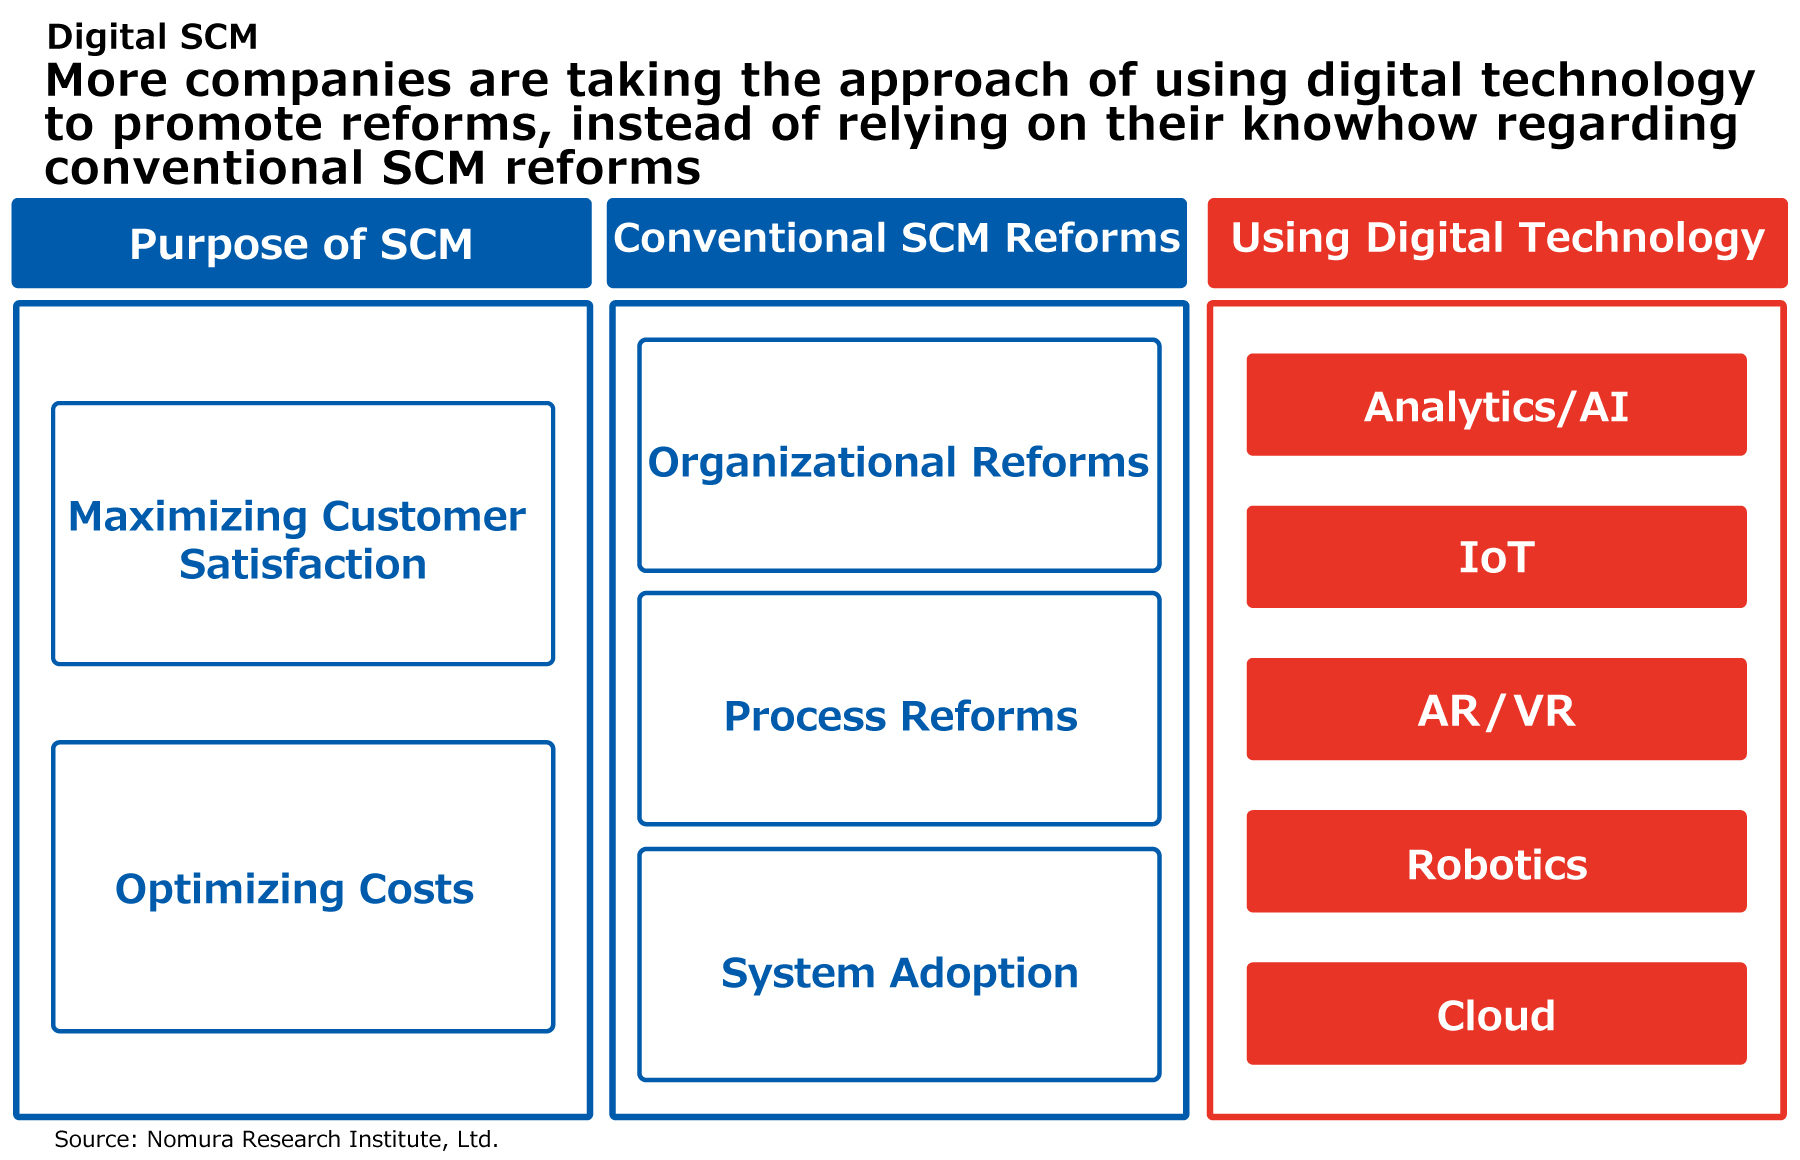 More companies are taking the approach of using digital technology to promote reforms, instead of relying on their knowhow regarding conventional SCM reforms